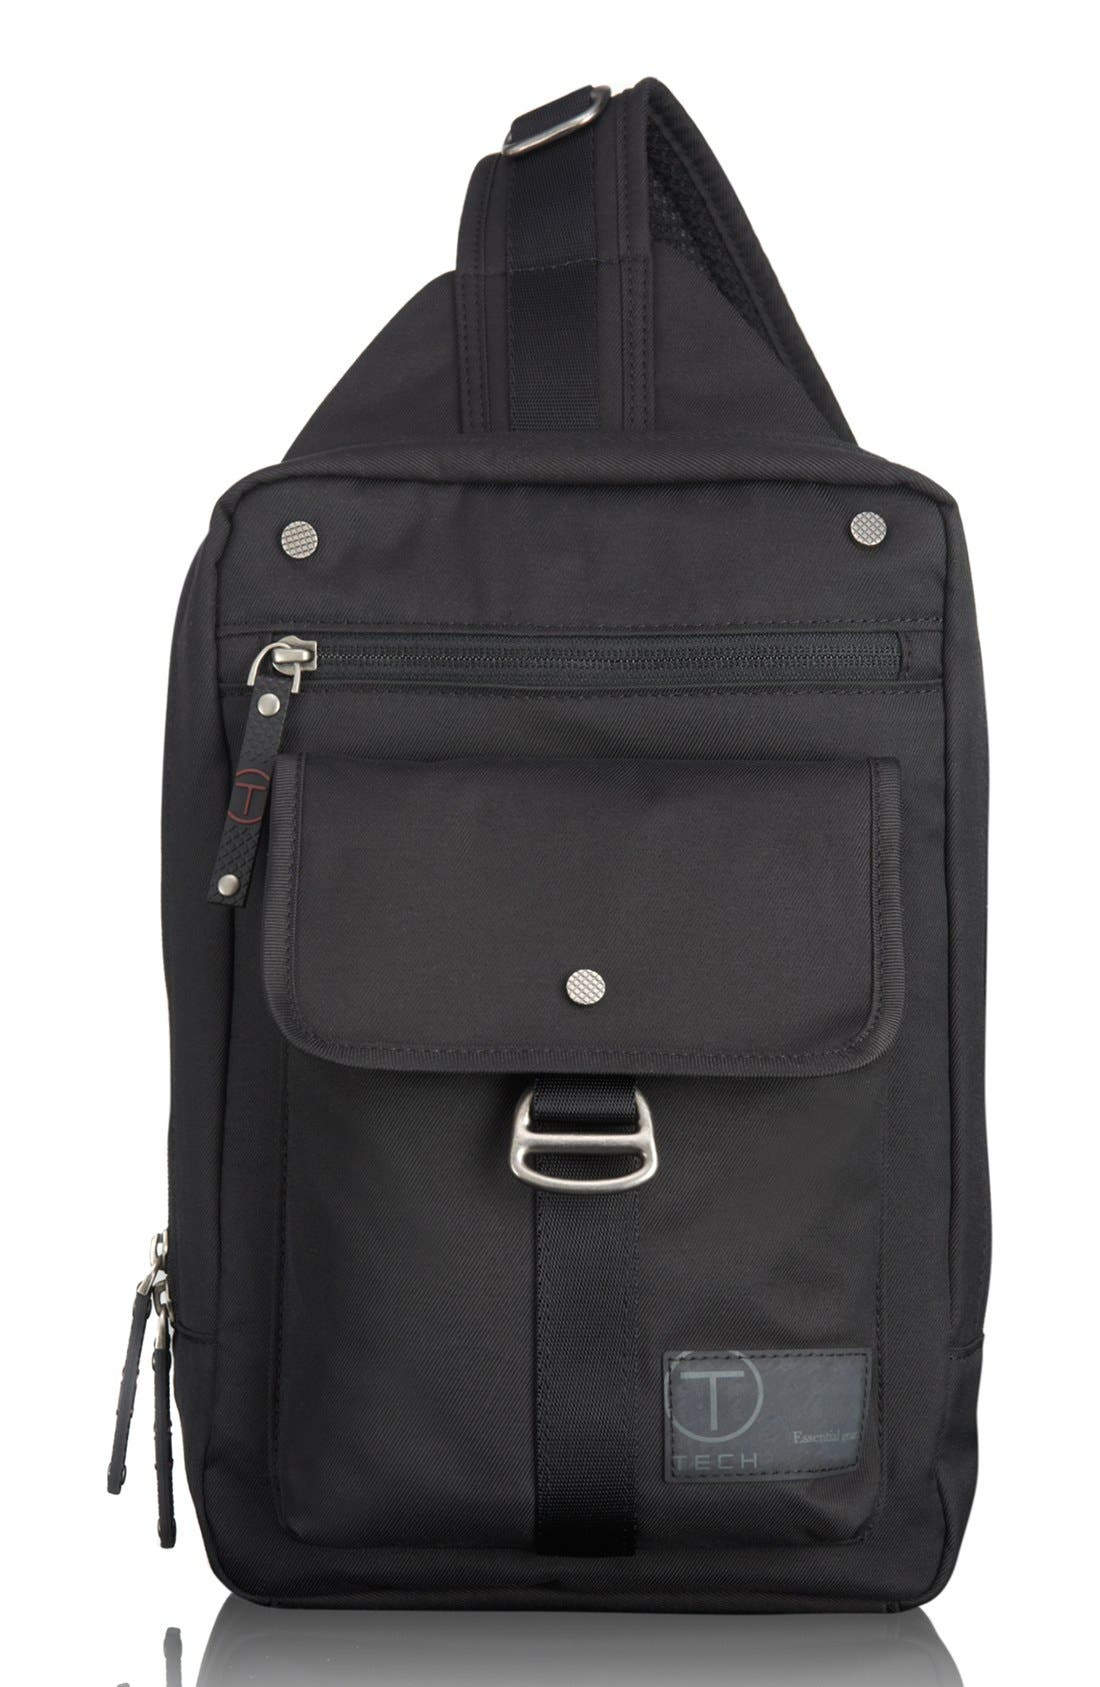 Alternate Image 1 Selected - T-Tech by Tumi 'Icon - Newton' Sling Backpack